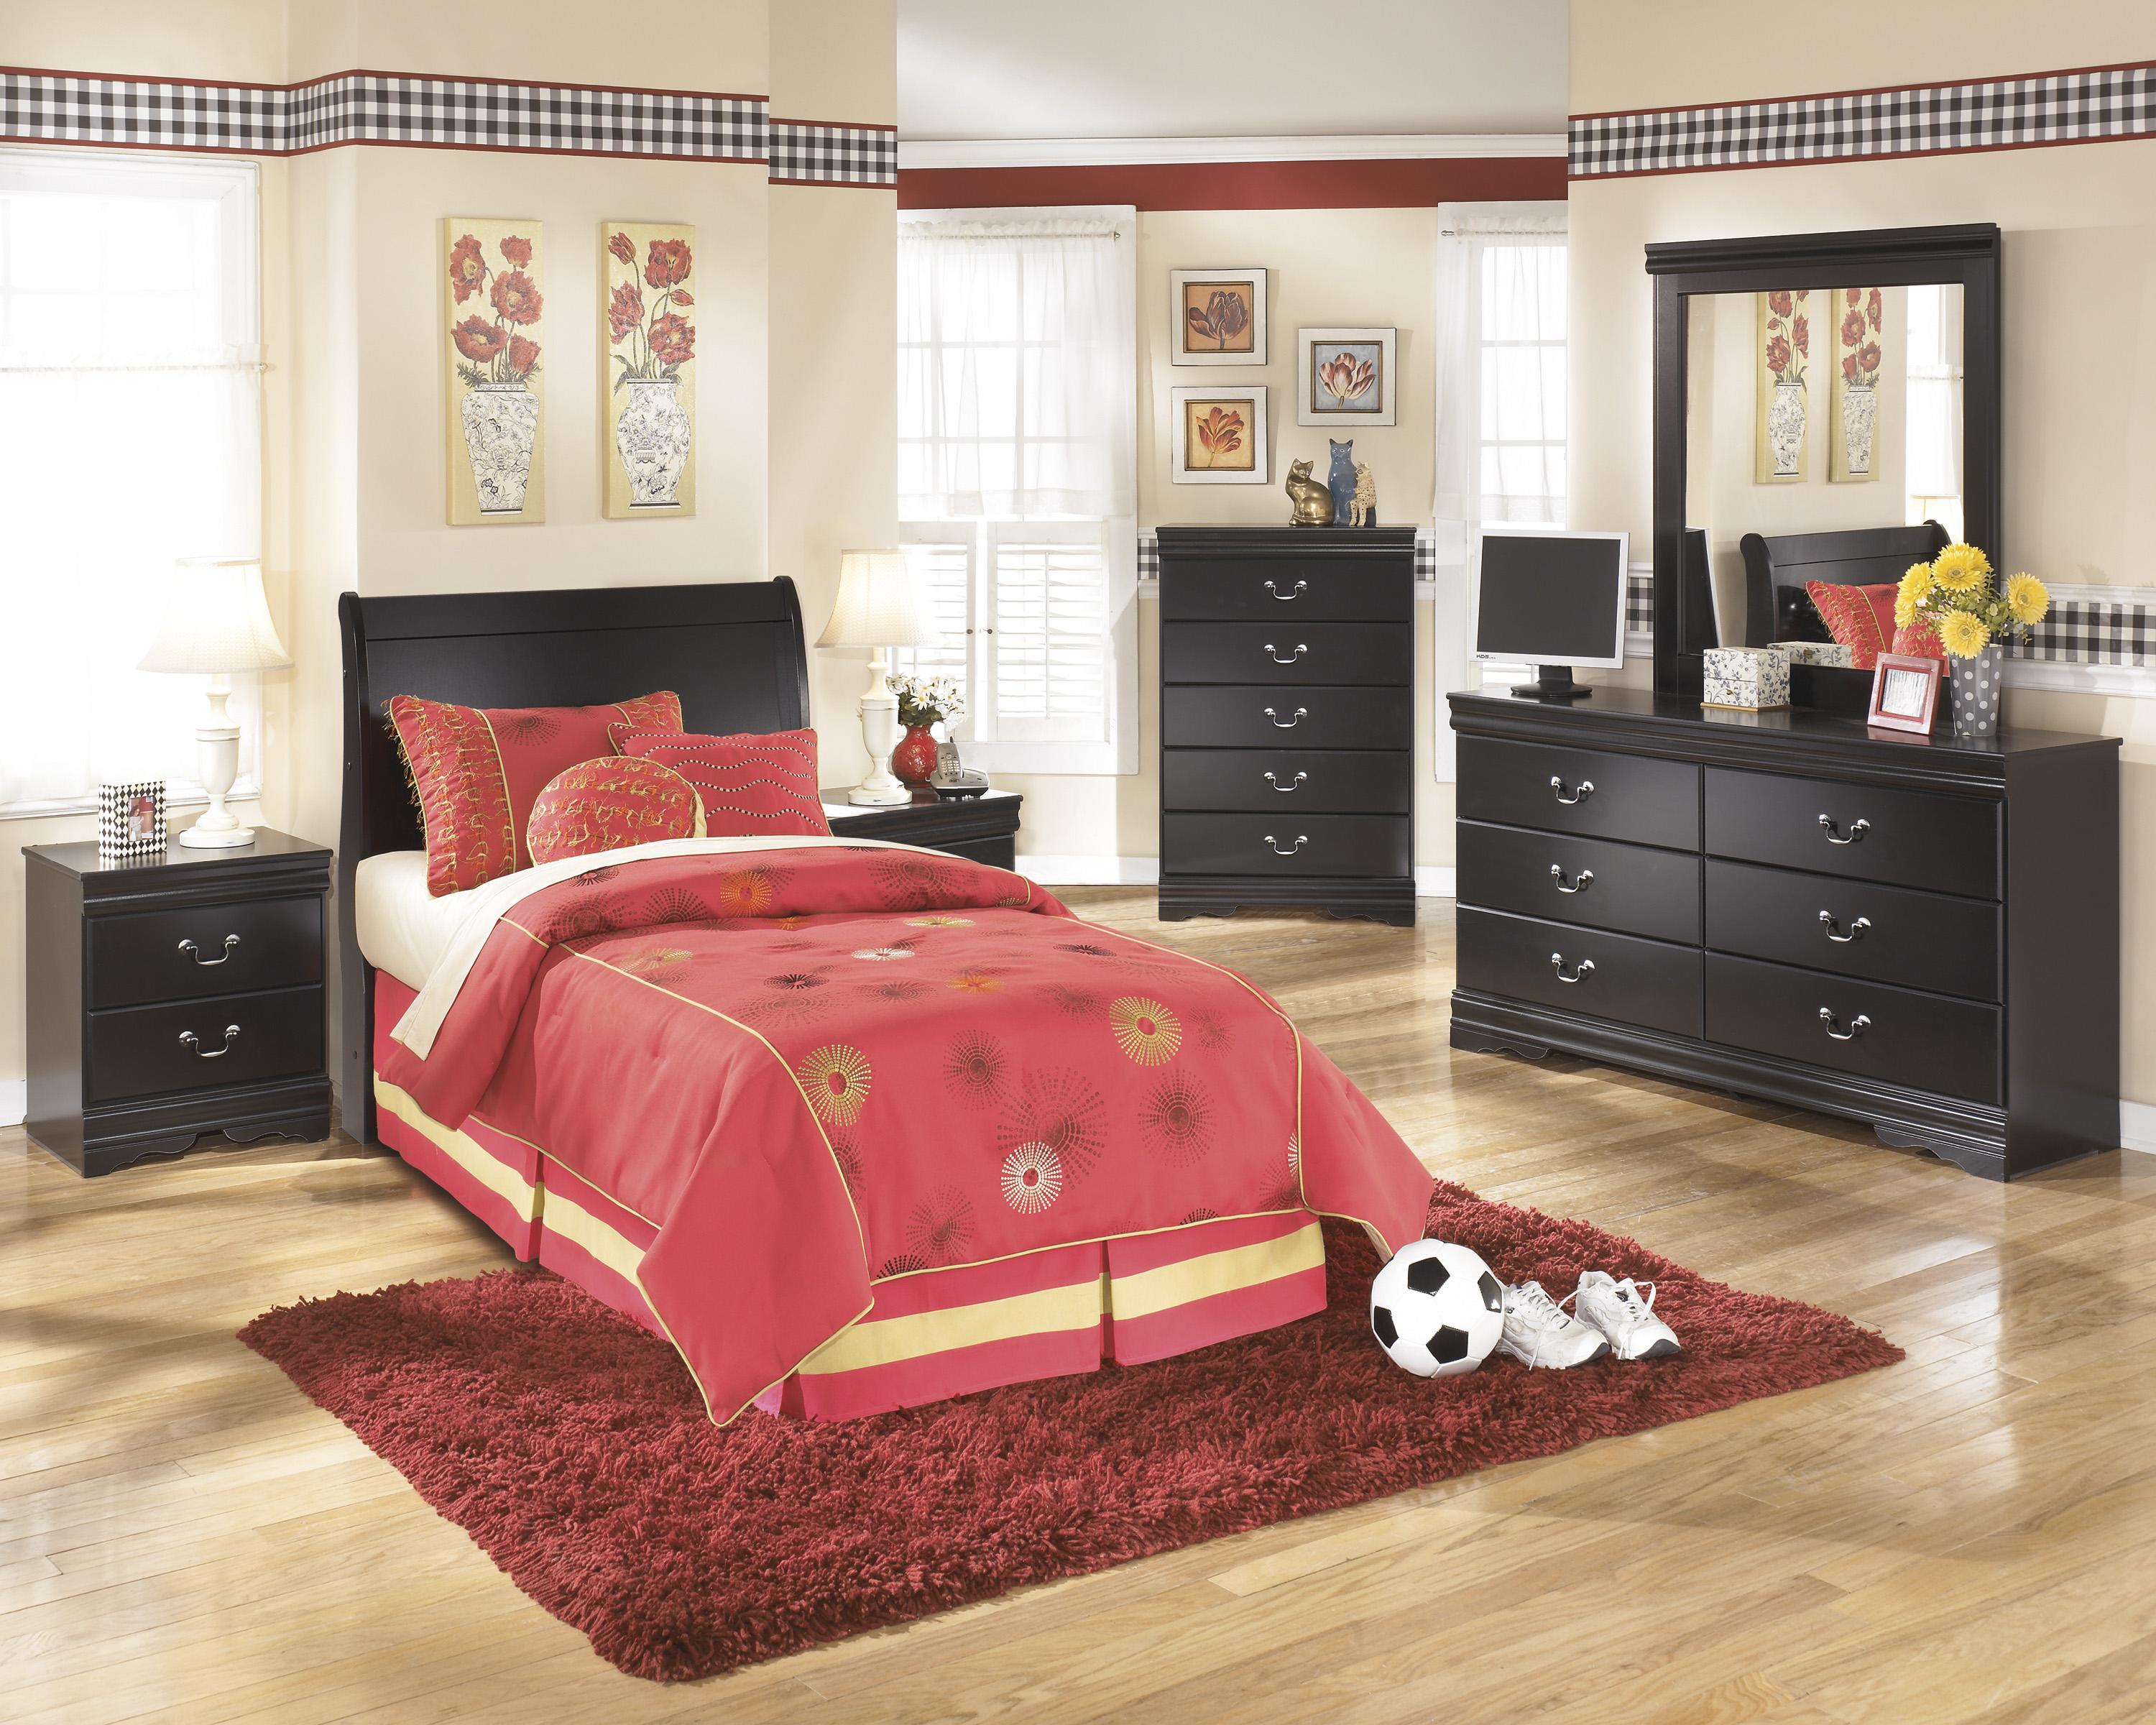 Huey Vineyard Twin Bedroom Group by Signature Design by Ashley at Northeast Factory Direct